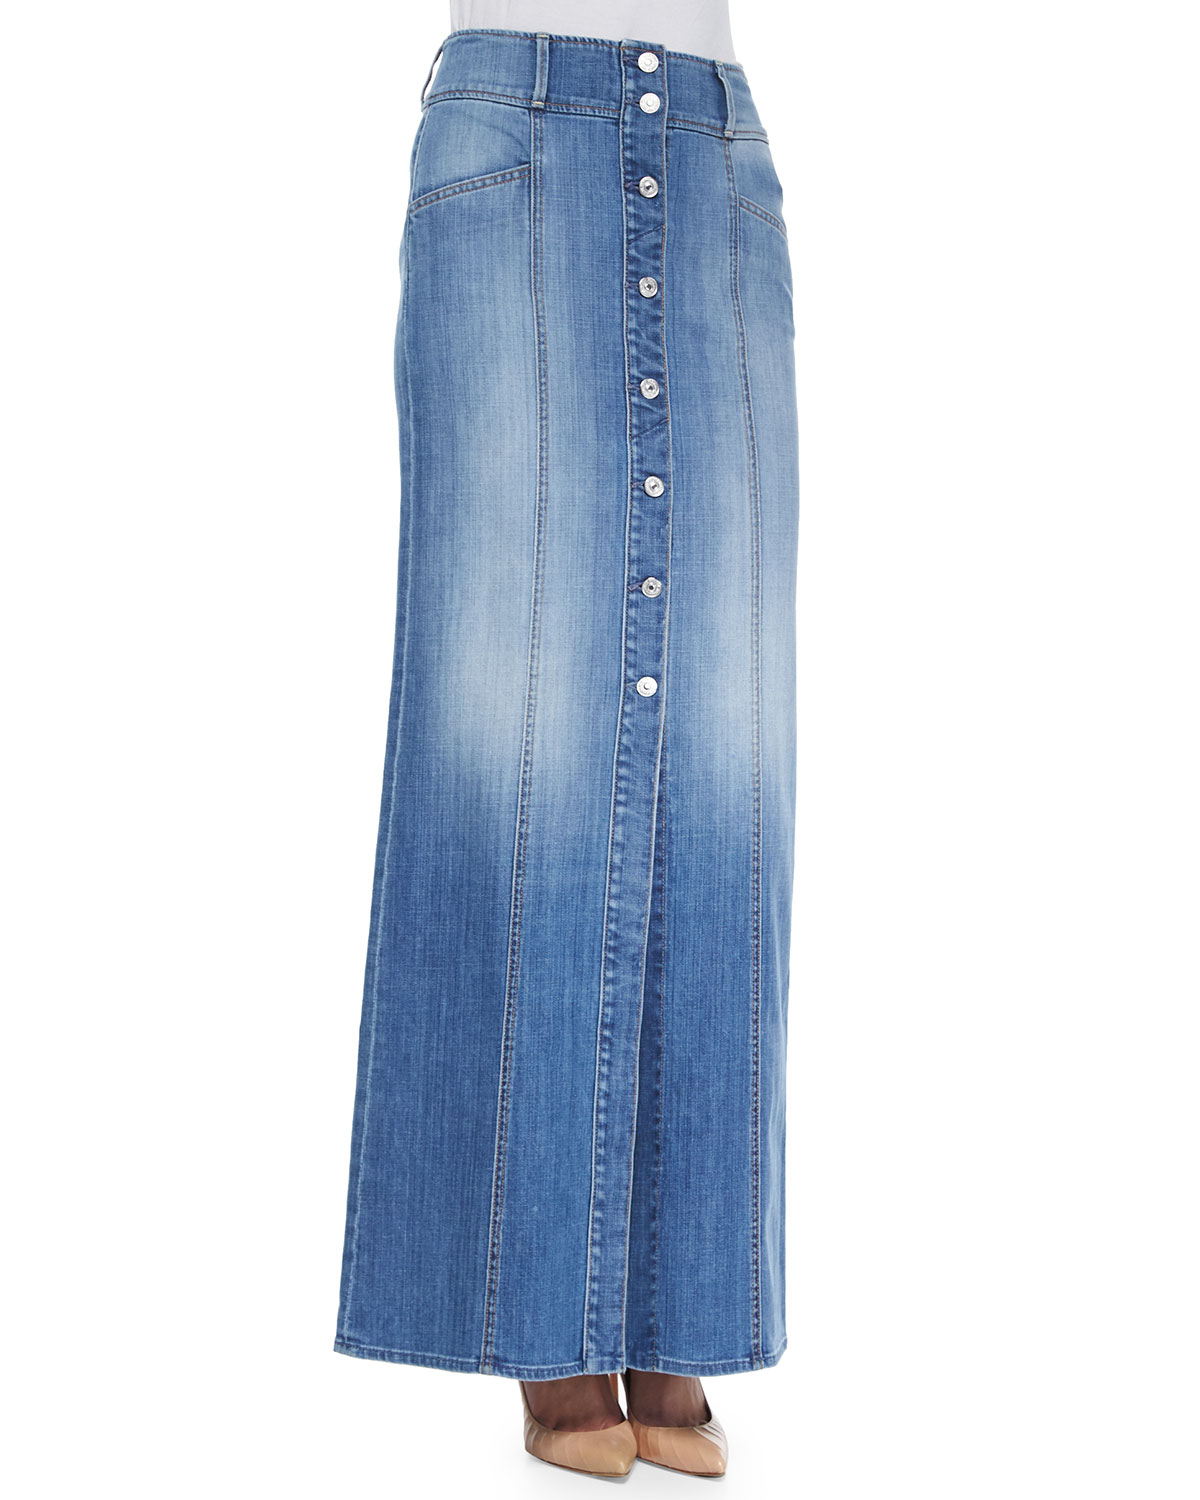 7 for all mankind button front denim skirt in blue